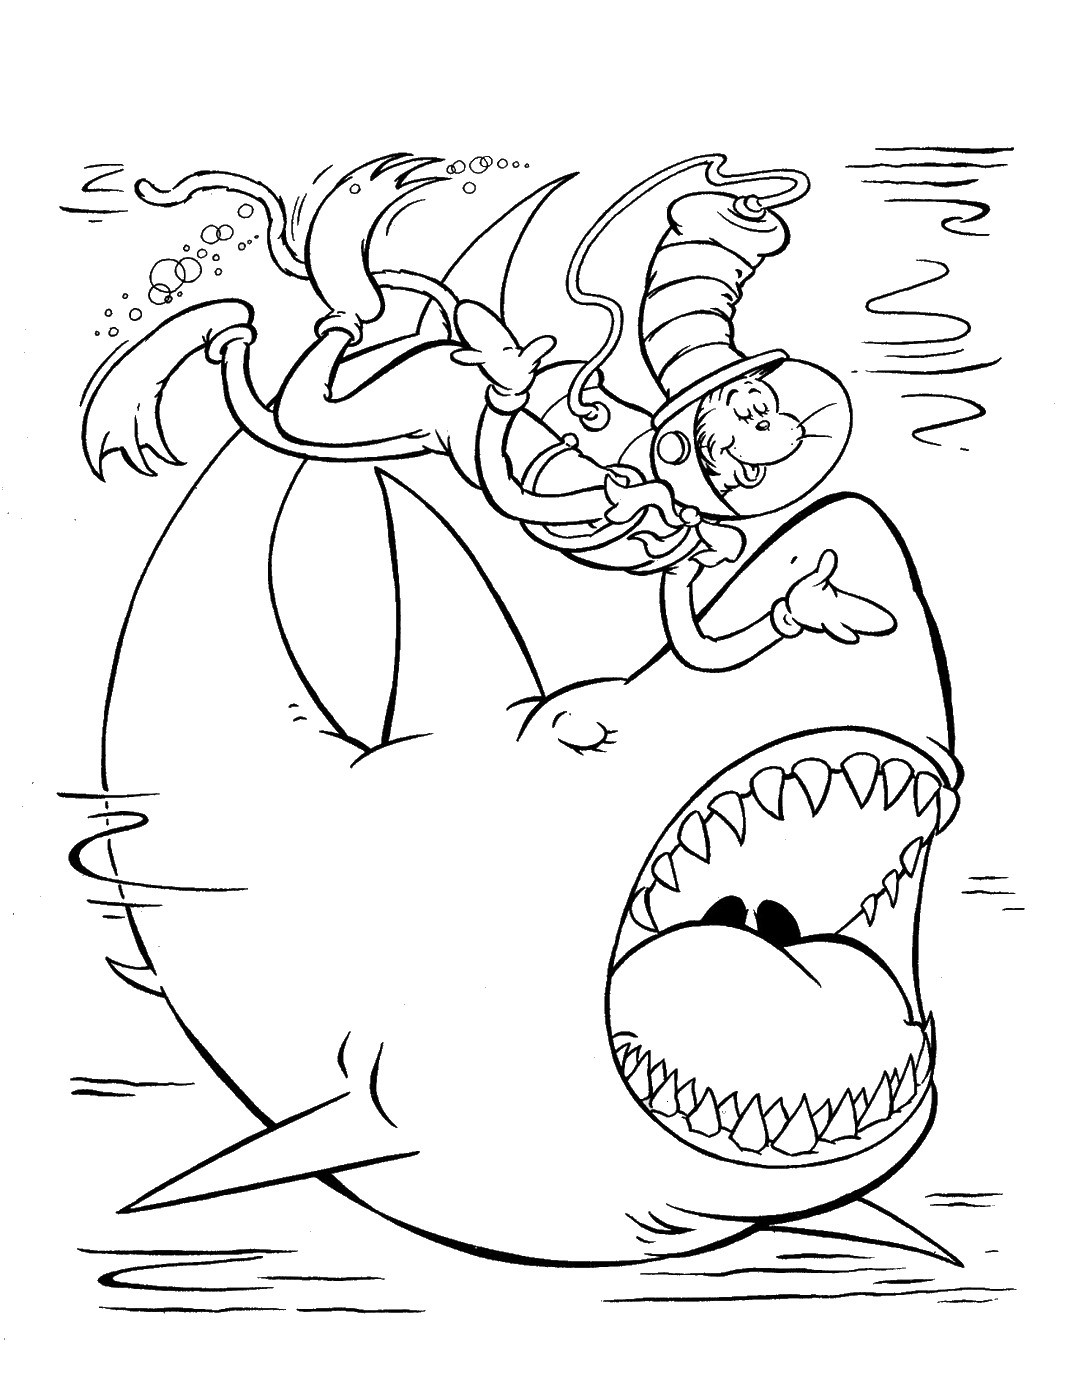 Best ideas about Cat In The Hat Printable Coloring Pages . Save or Pin Cat in the Hat Coloring Pages Now.